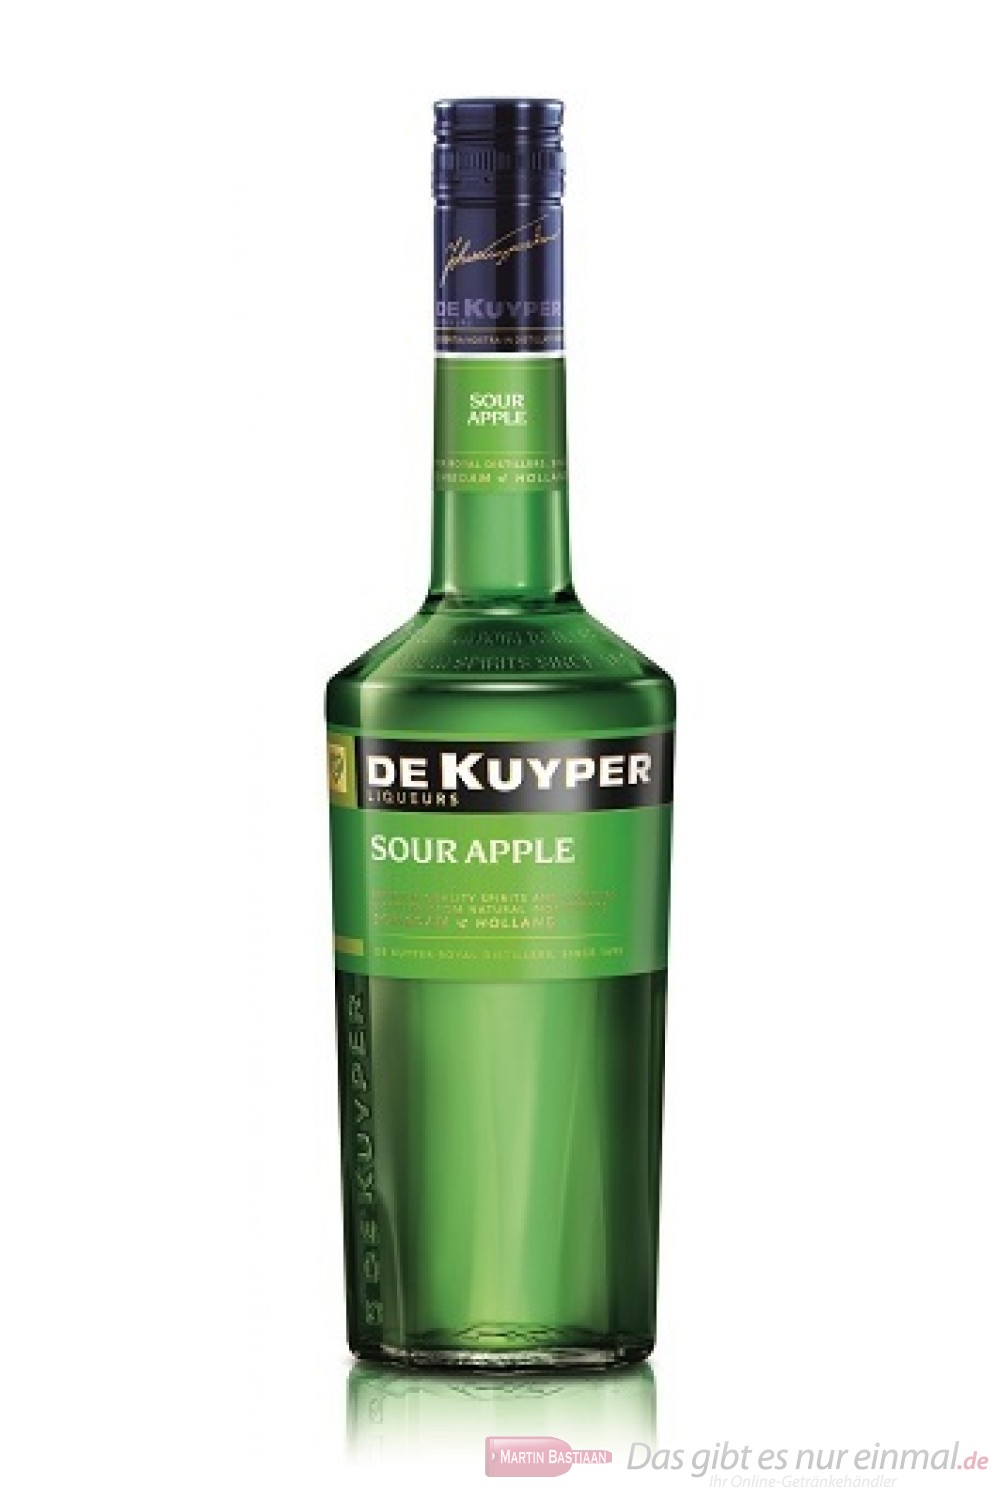 De Kuyper Sour Apple